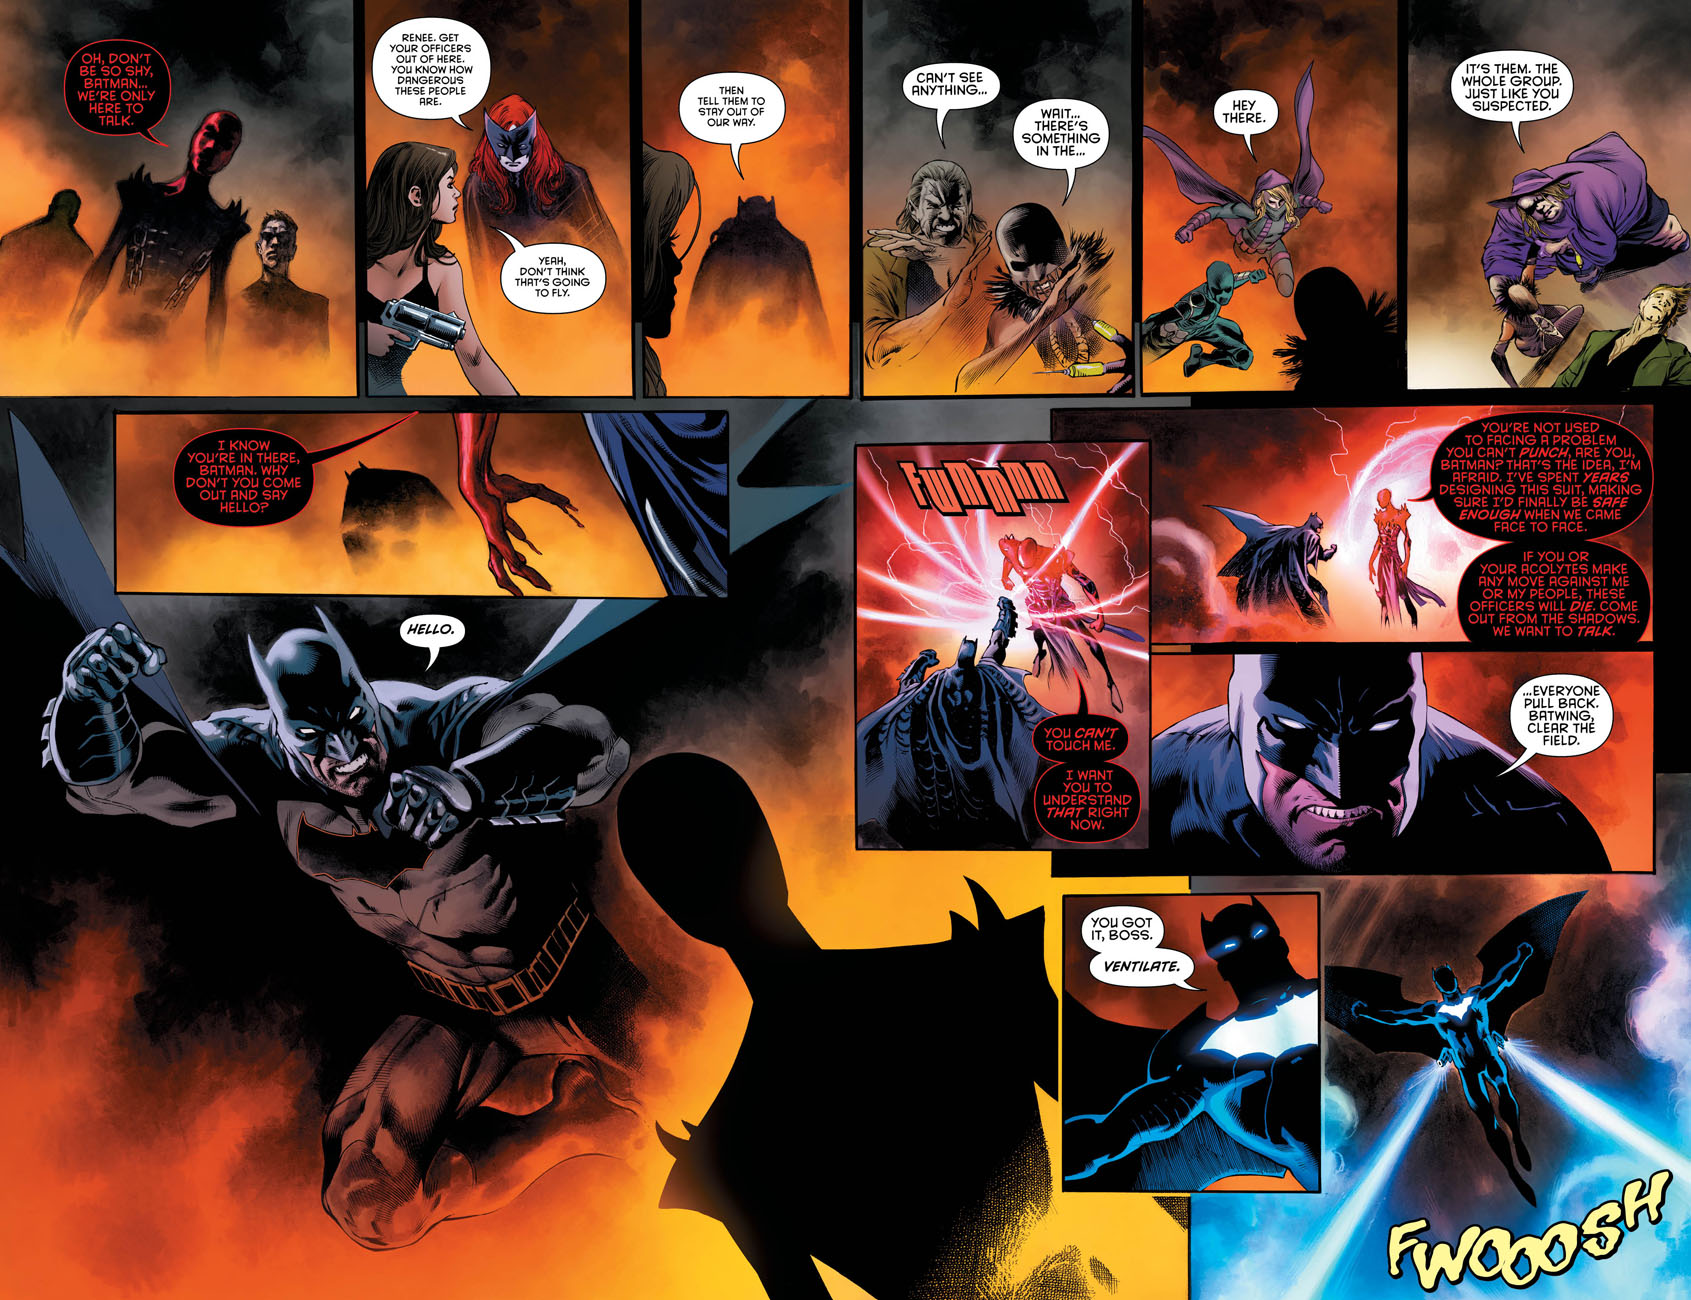 Detective Comics 944 pages 4 and 5